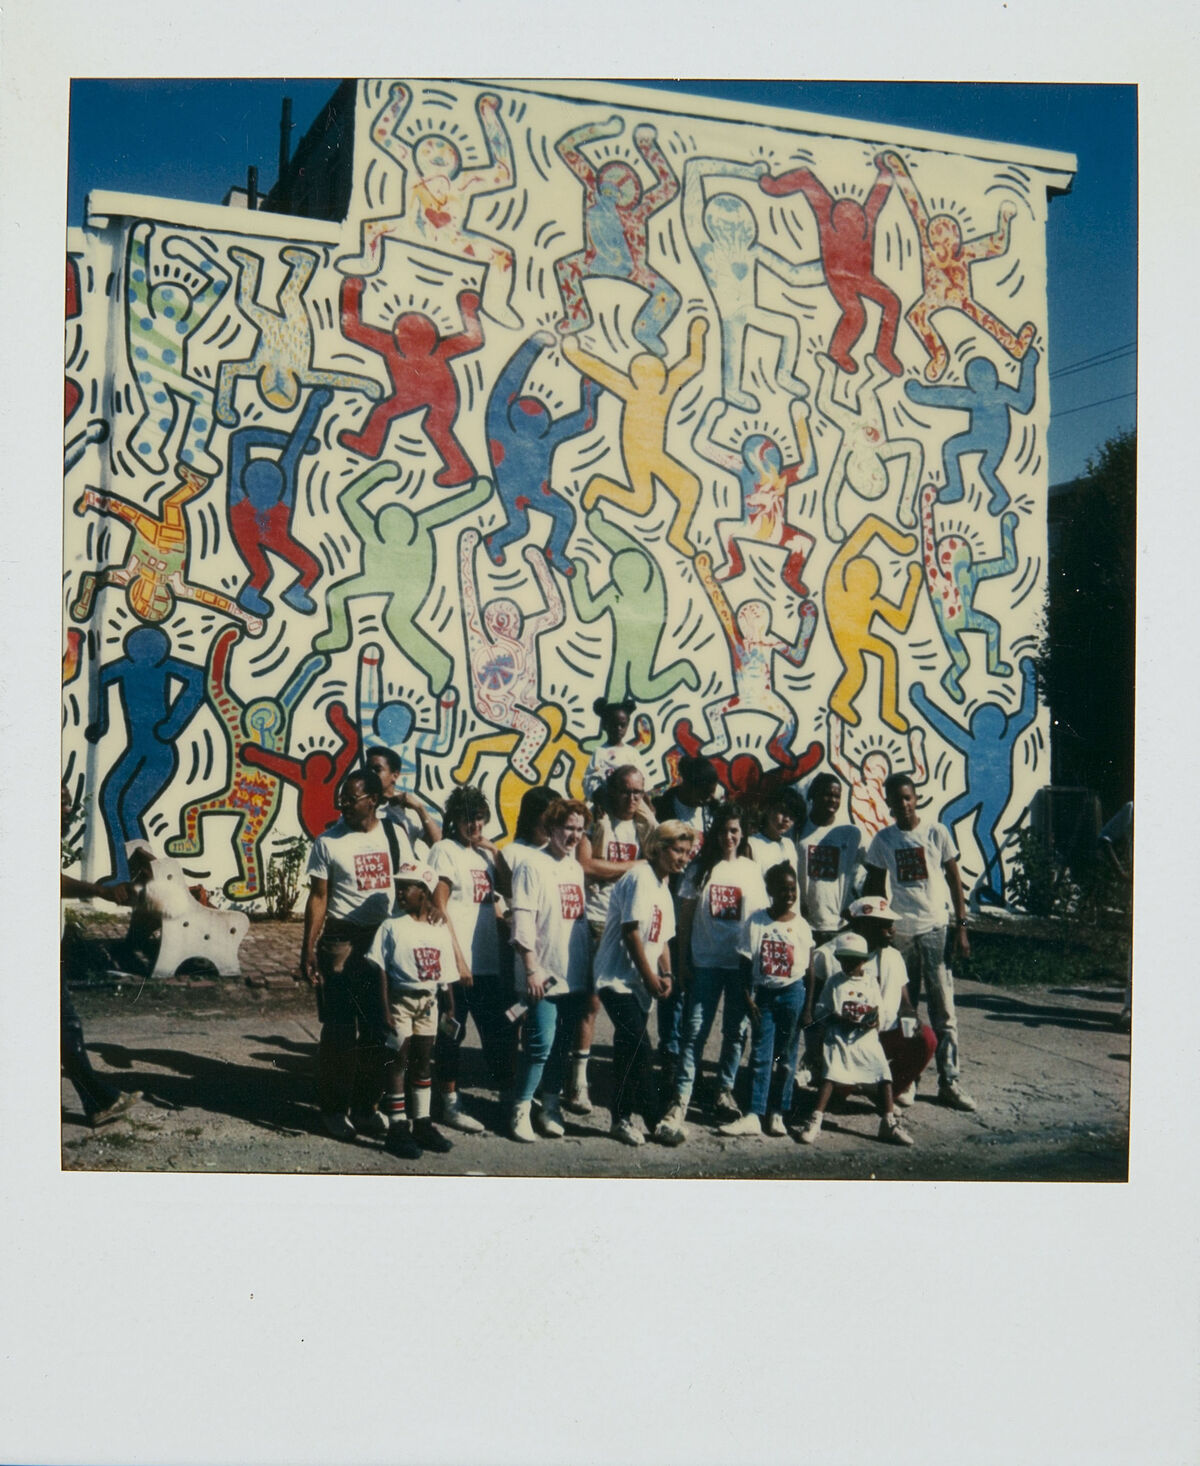 Polaroid and mural by Keith Haring, We the Youth, Philadelphia Mural, 1987. Courtesy of The Keith Haring Foundation Archives.